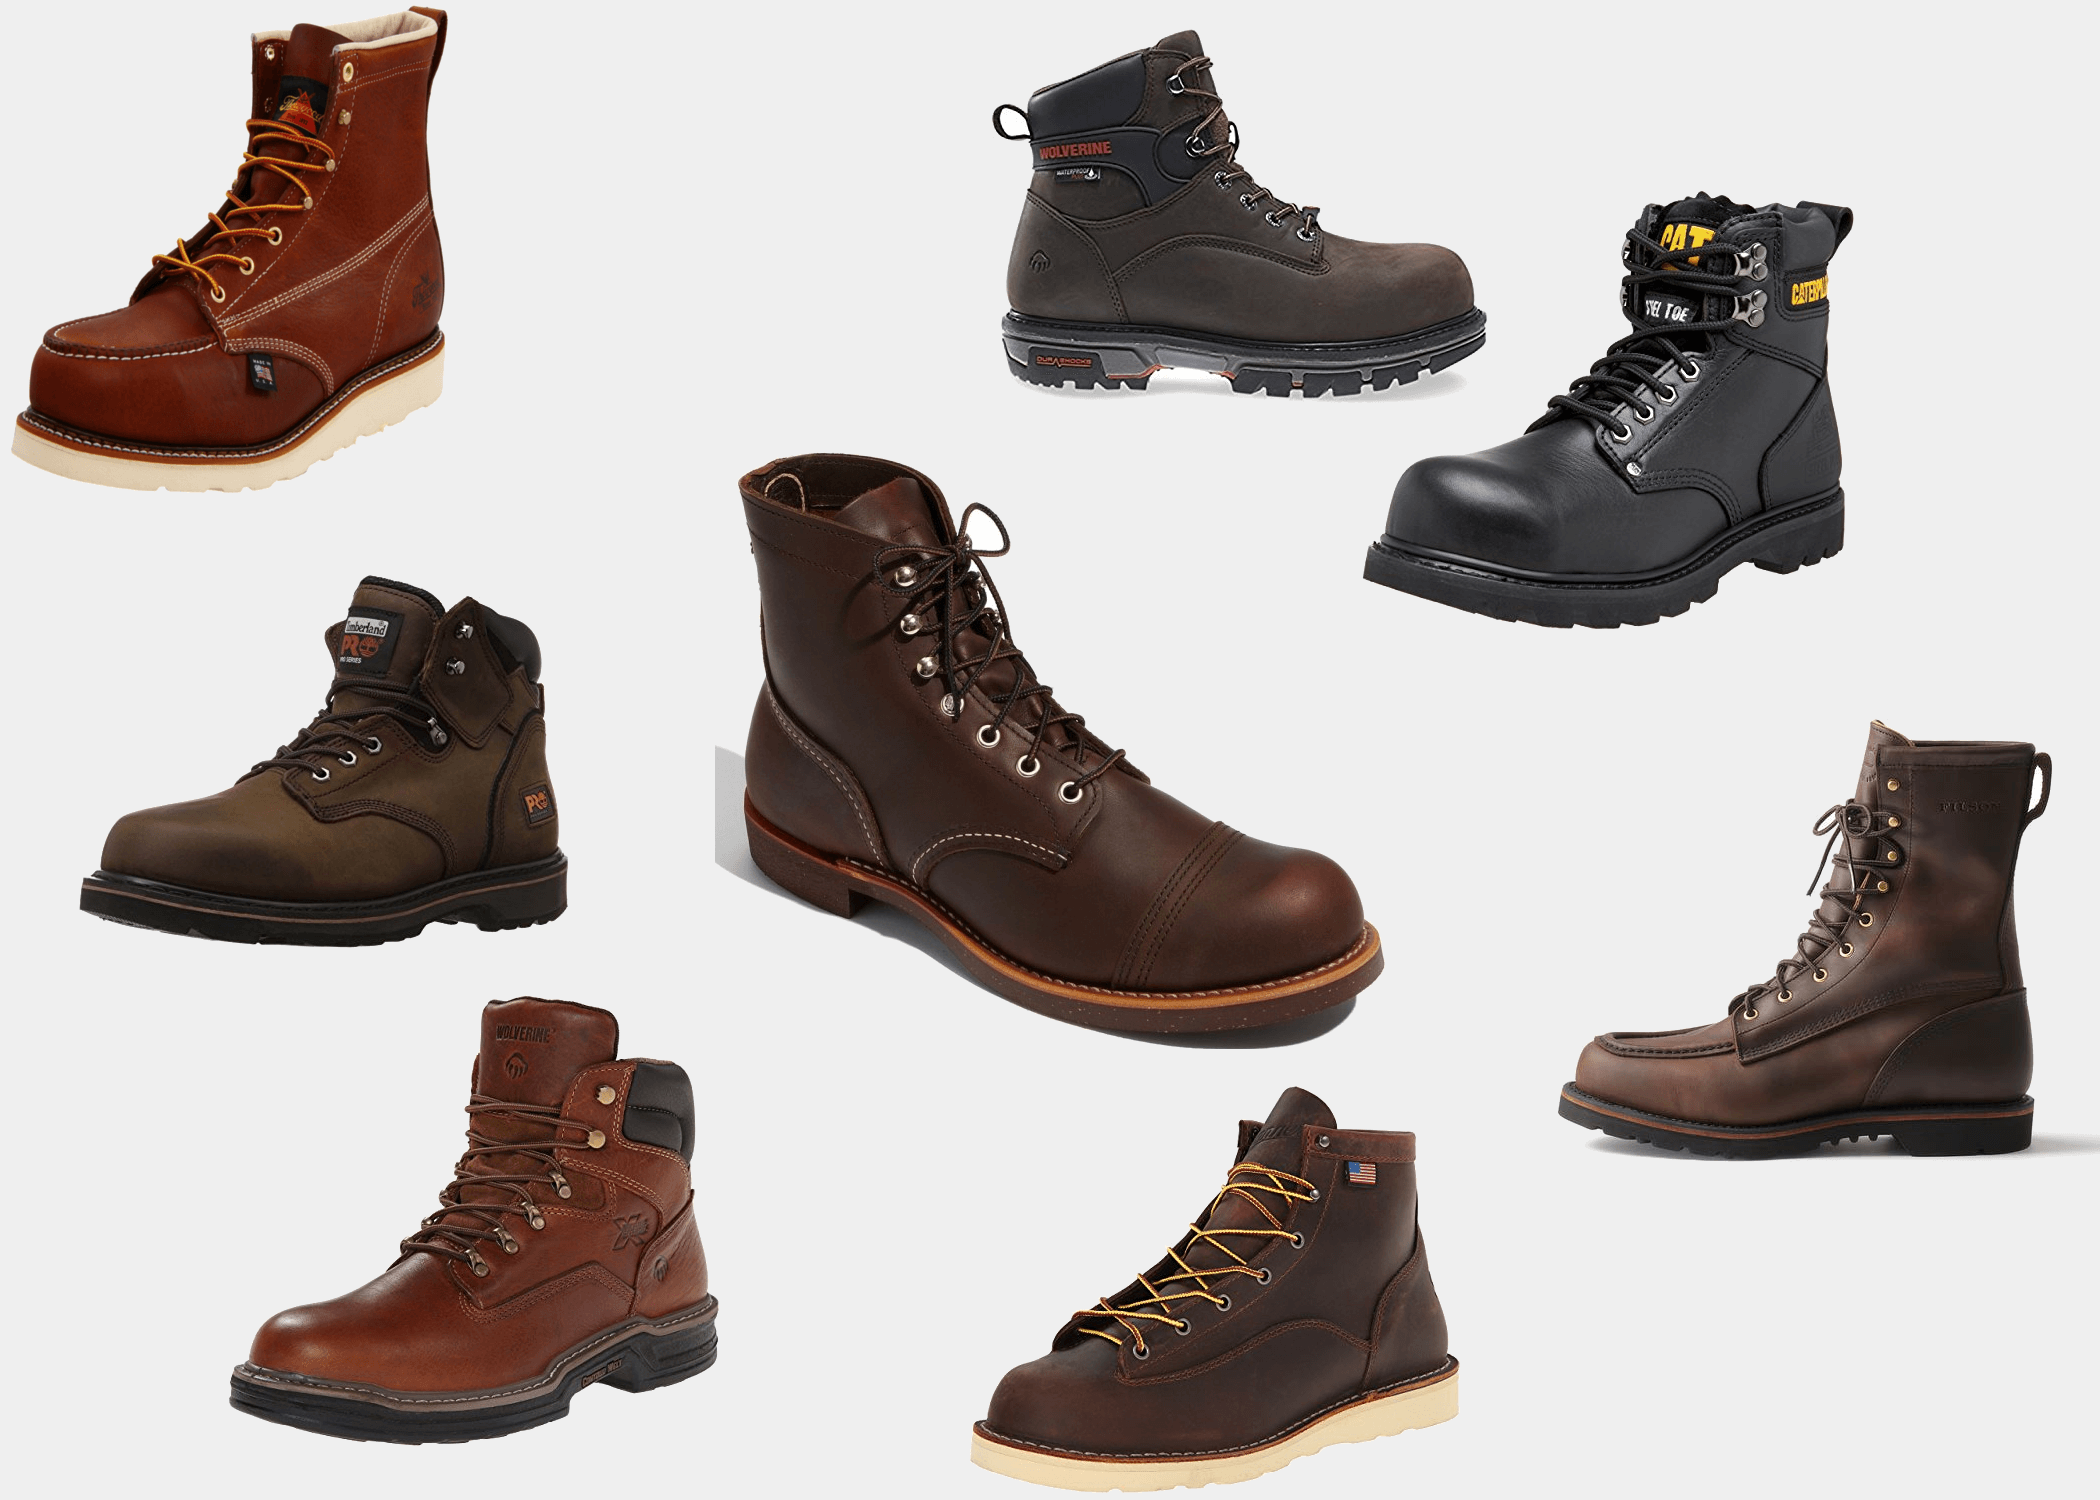 Sales promotion 2019 wholesale price better The 11 Best Work Boots for Men | Improb